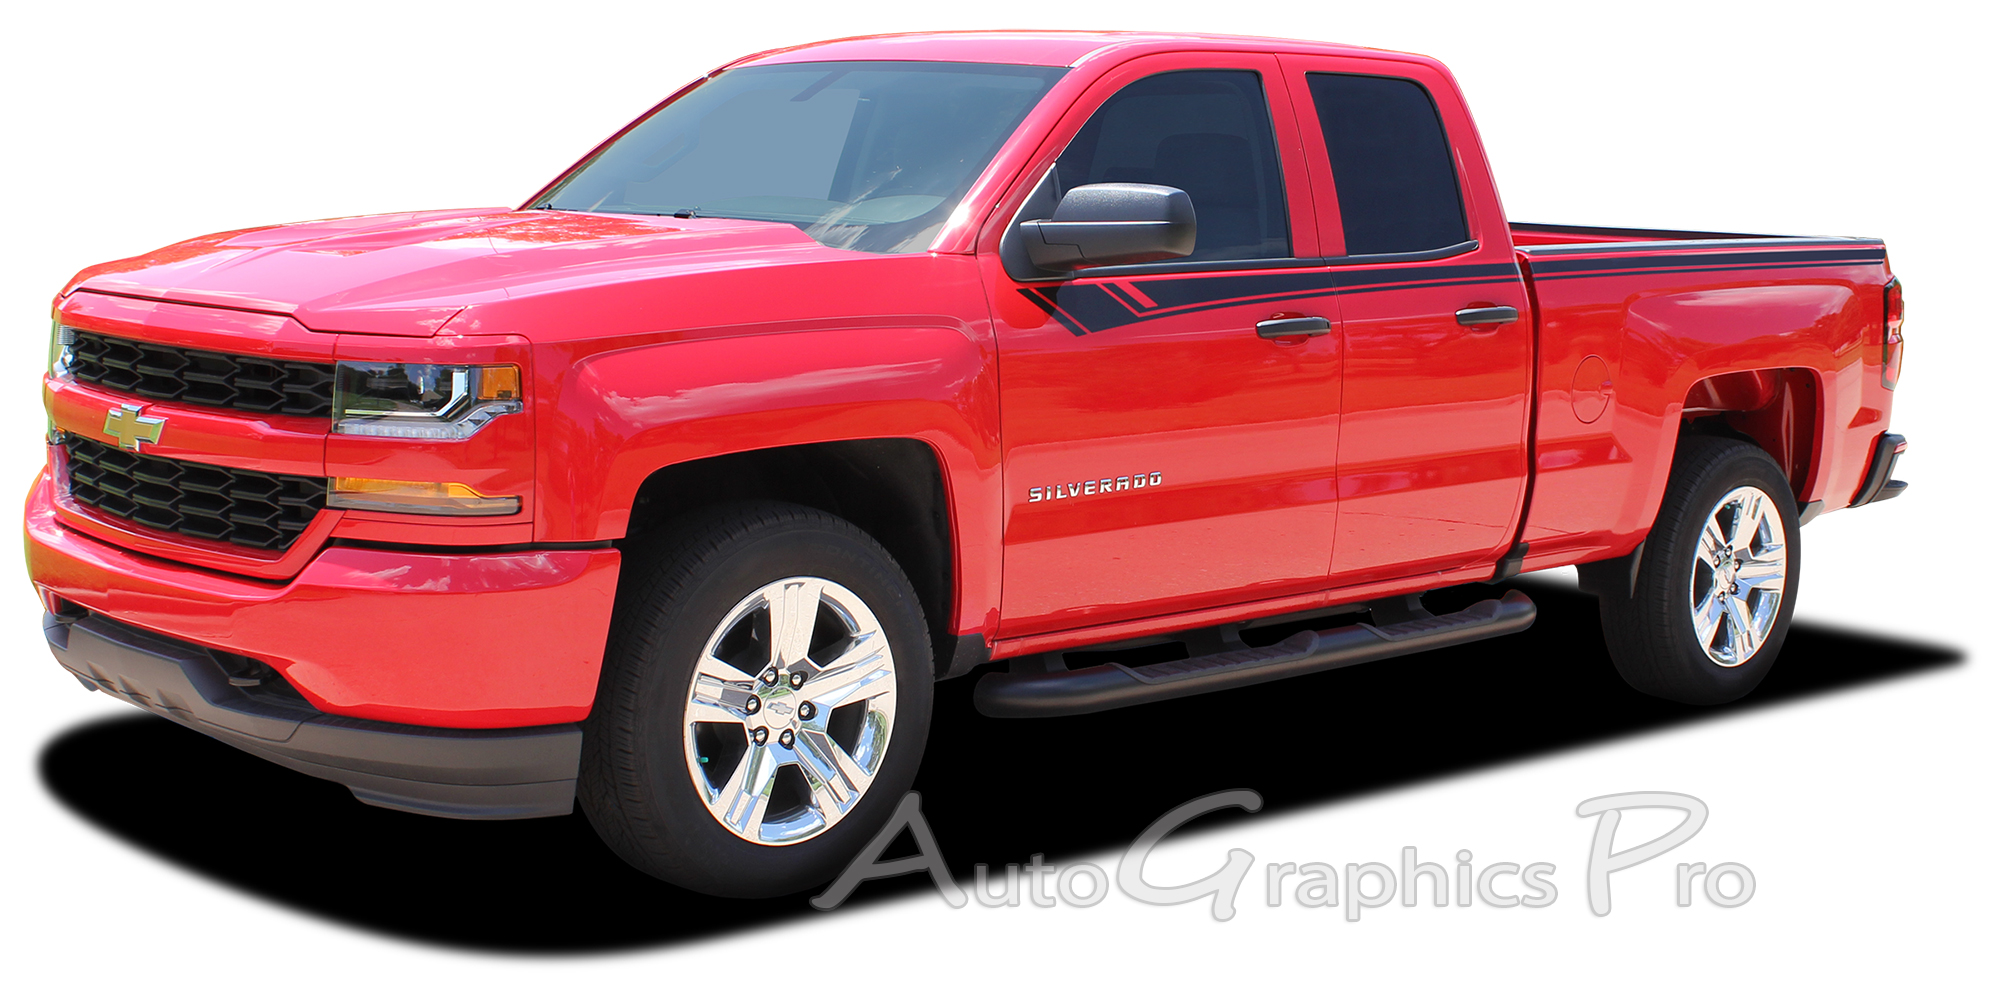 2014 2017 2018 chevy silverado breaker truck stripes upper body accent decals side door vinyl. Black Bedroom Furniture Sets. Home Design Ideas